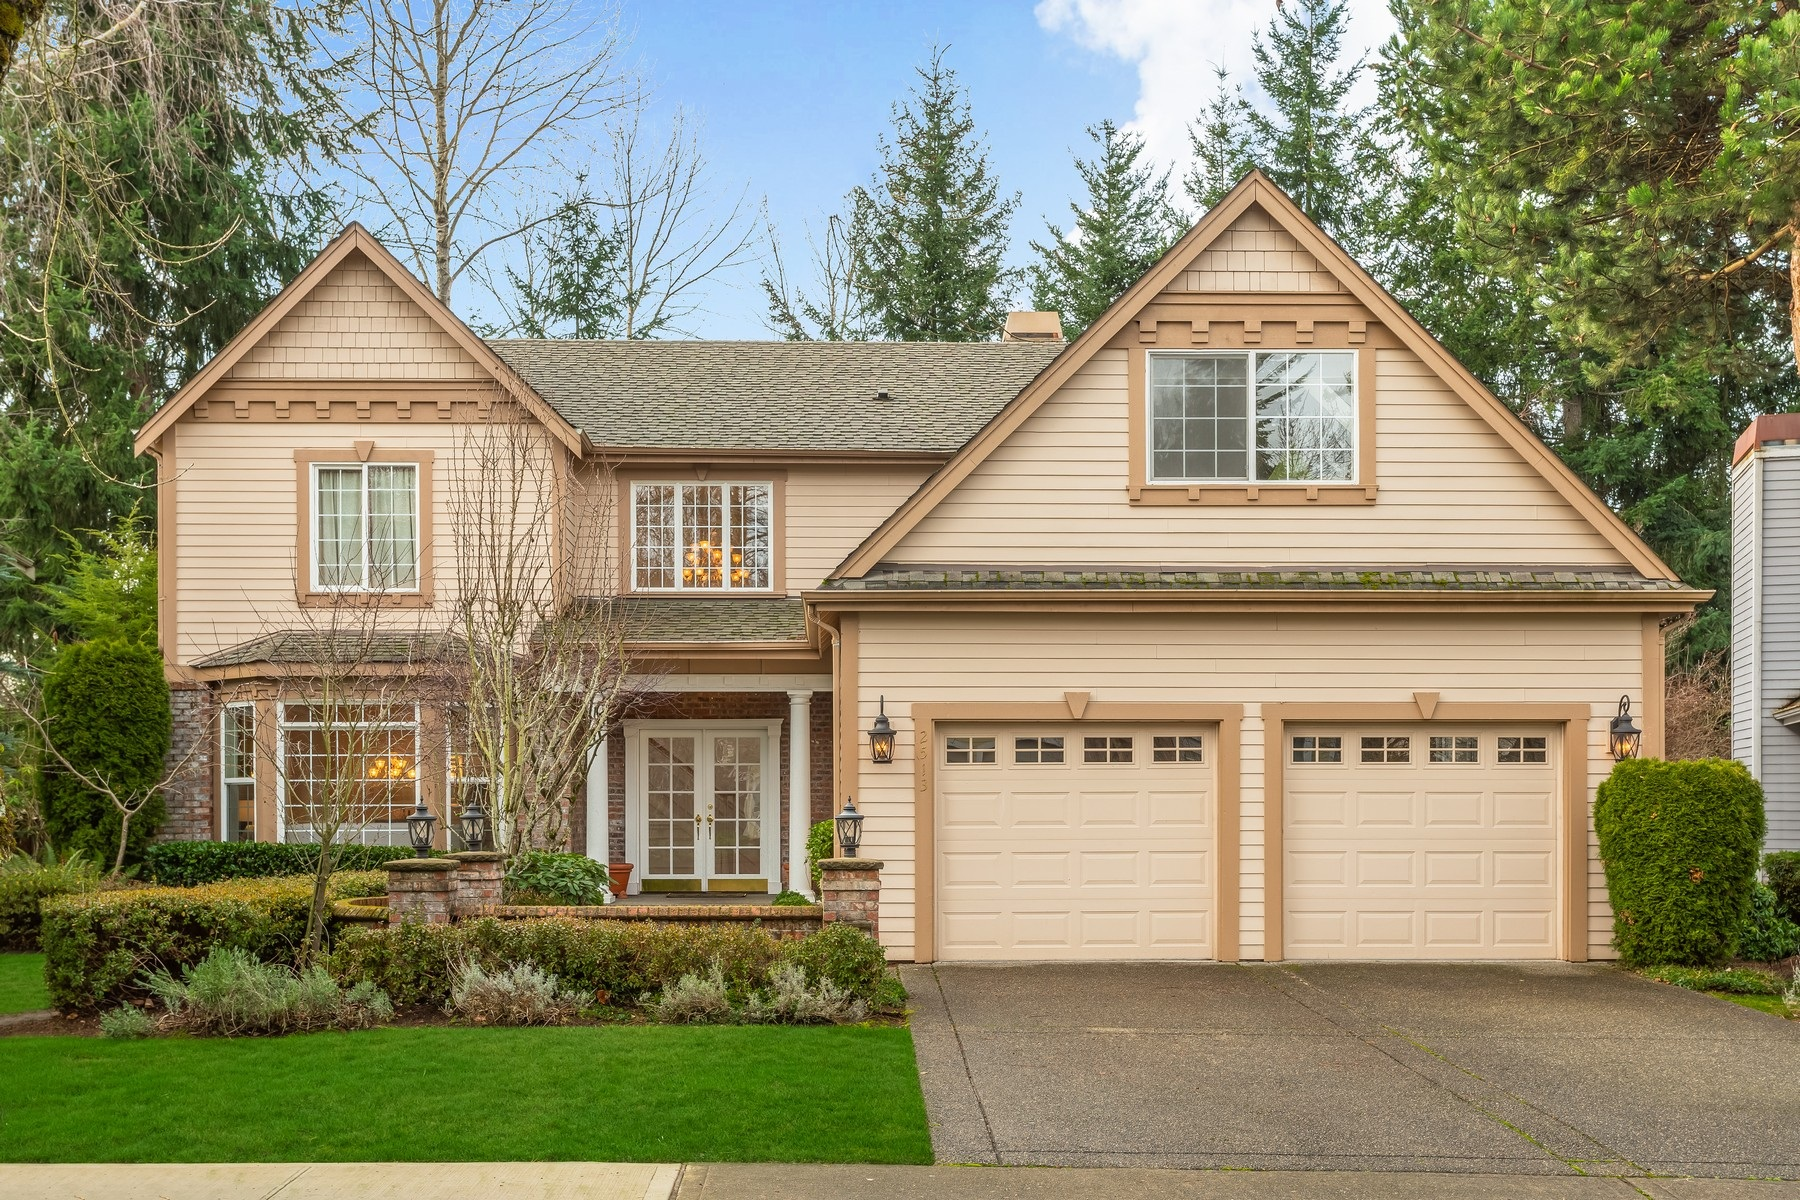 Renton, WA | Sold for $860,000